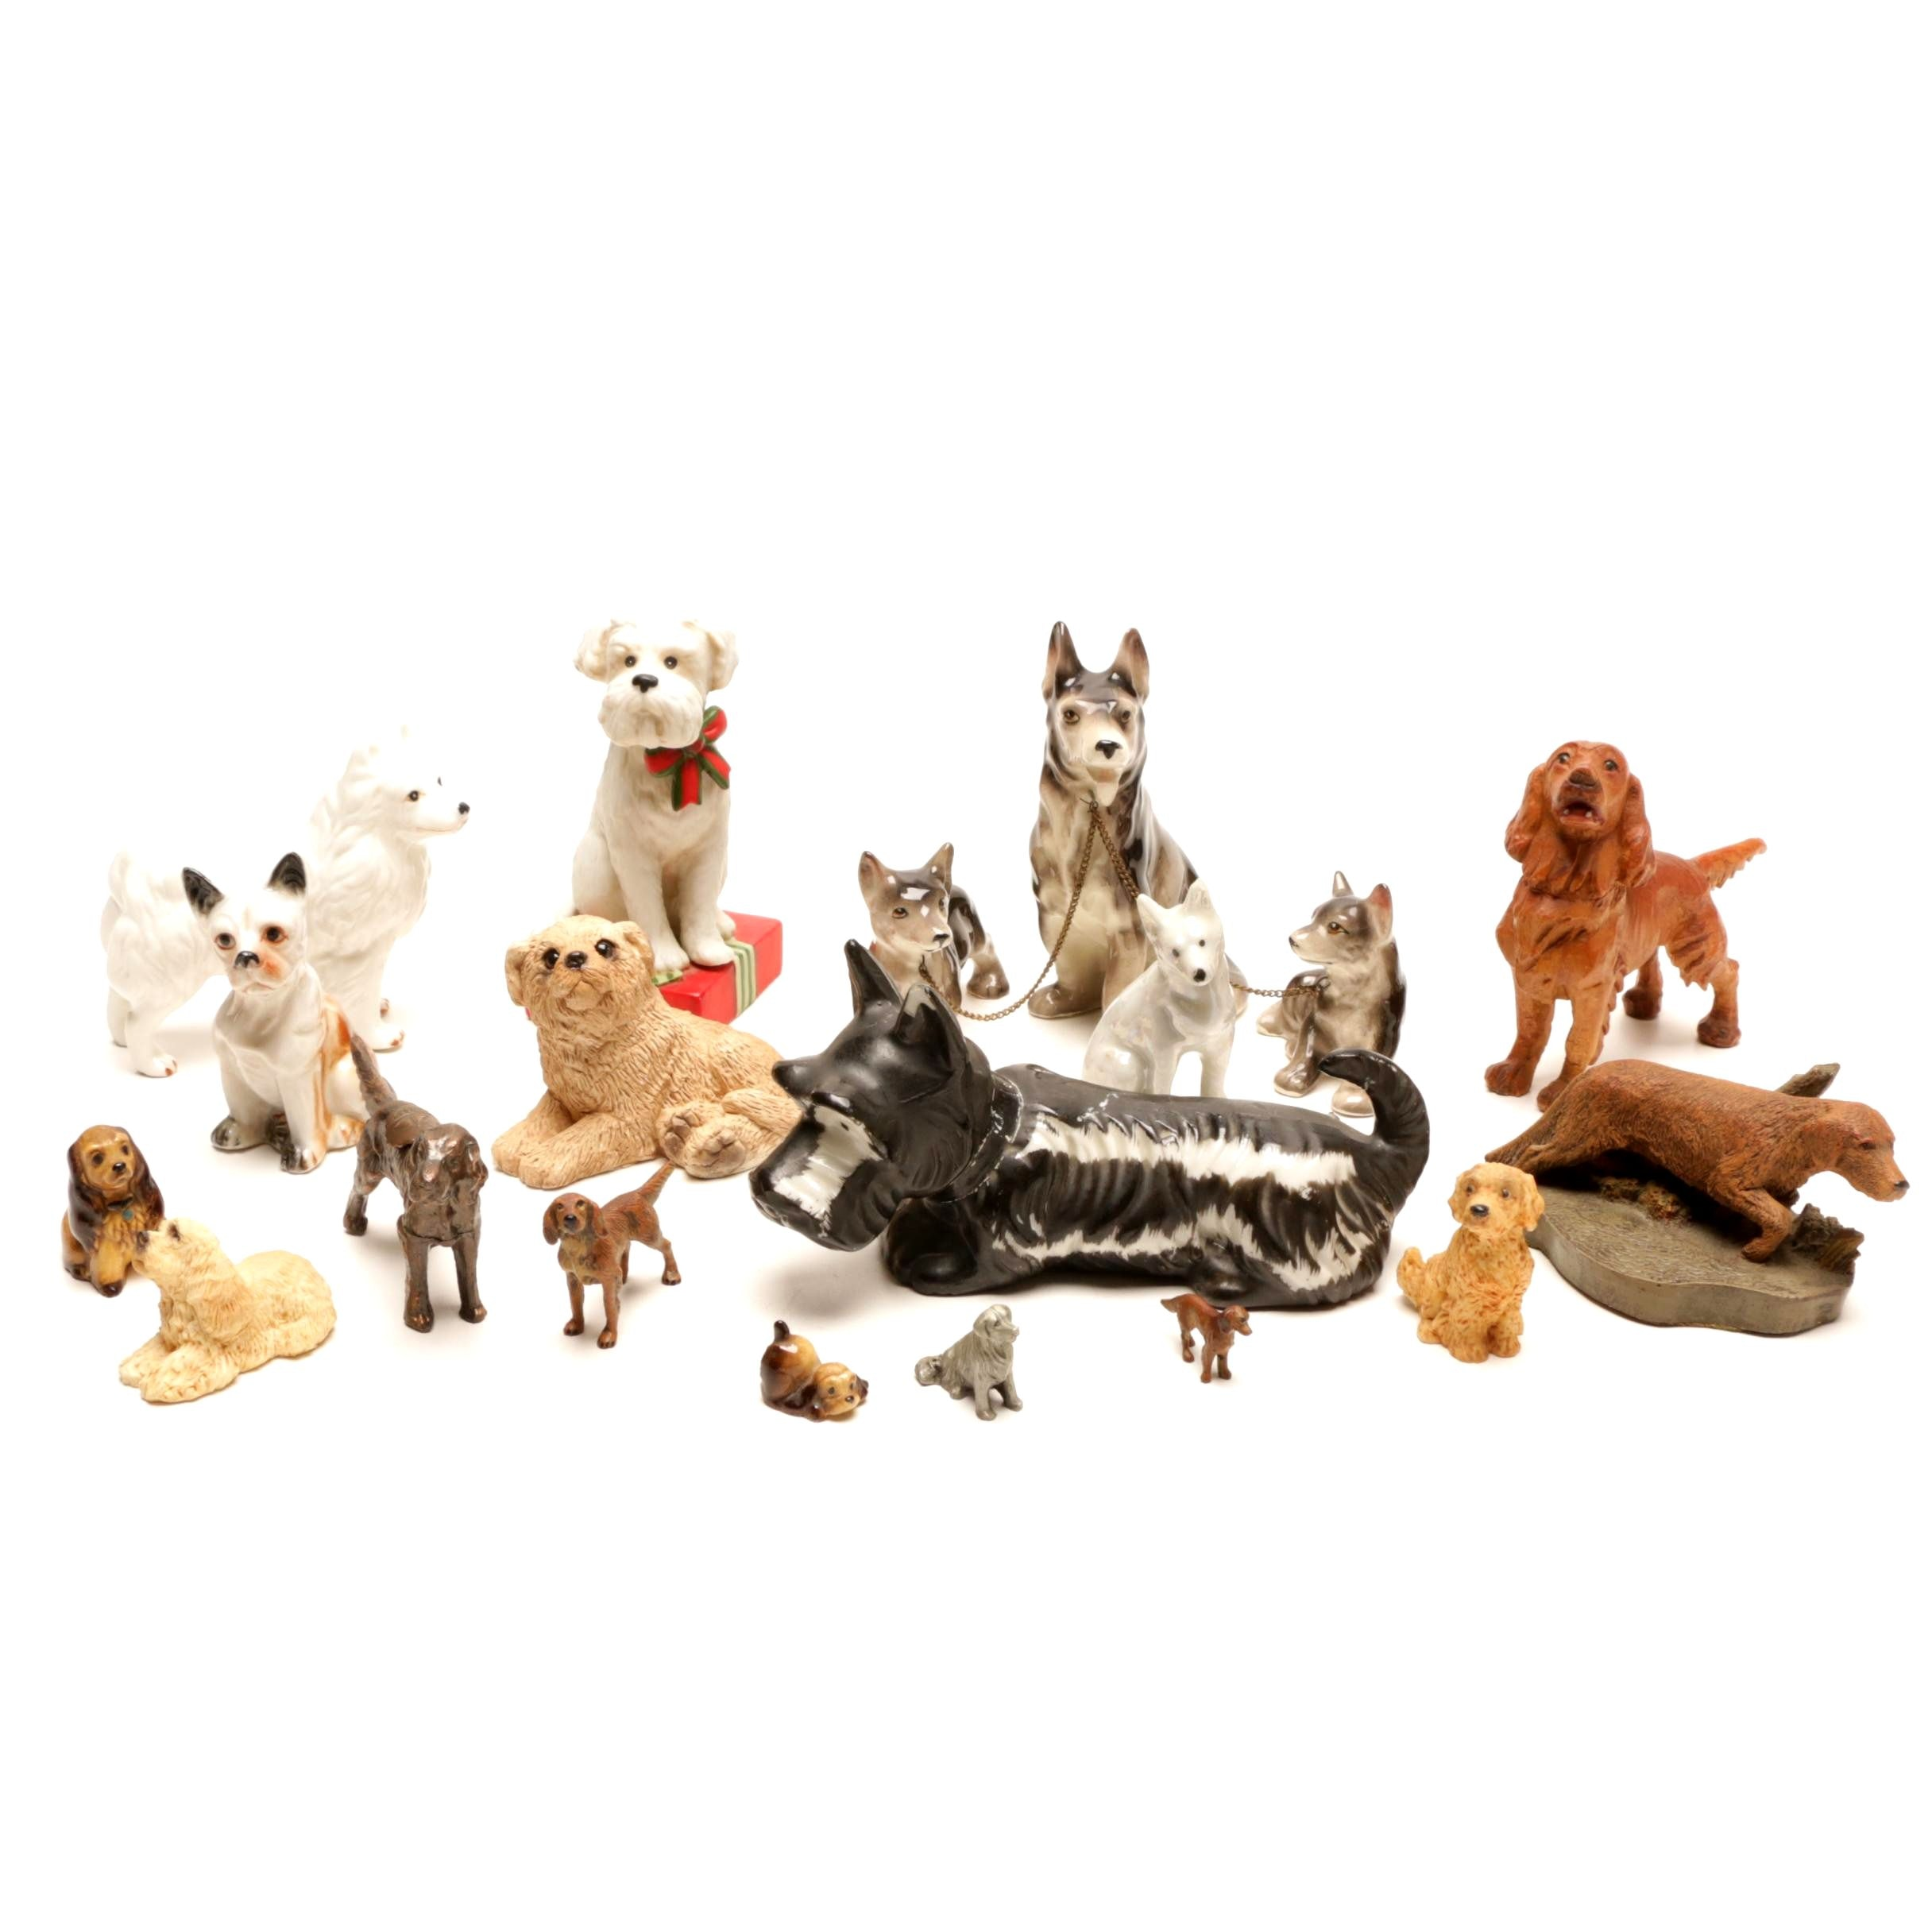 Decorative Dog Figurines of All Sizes